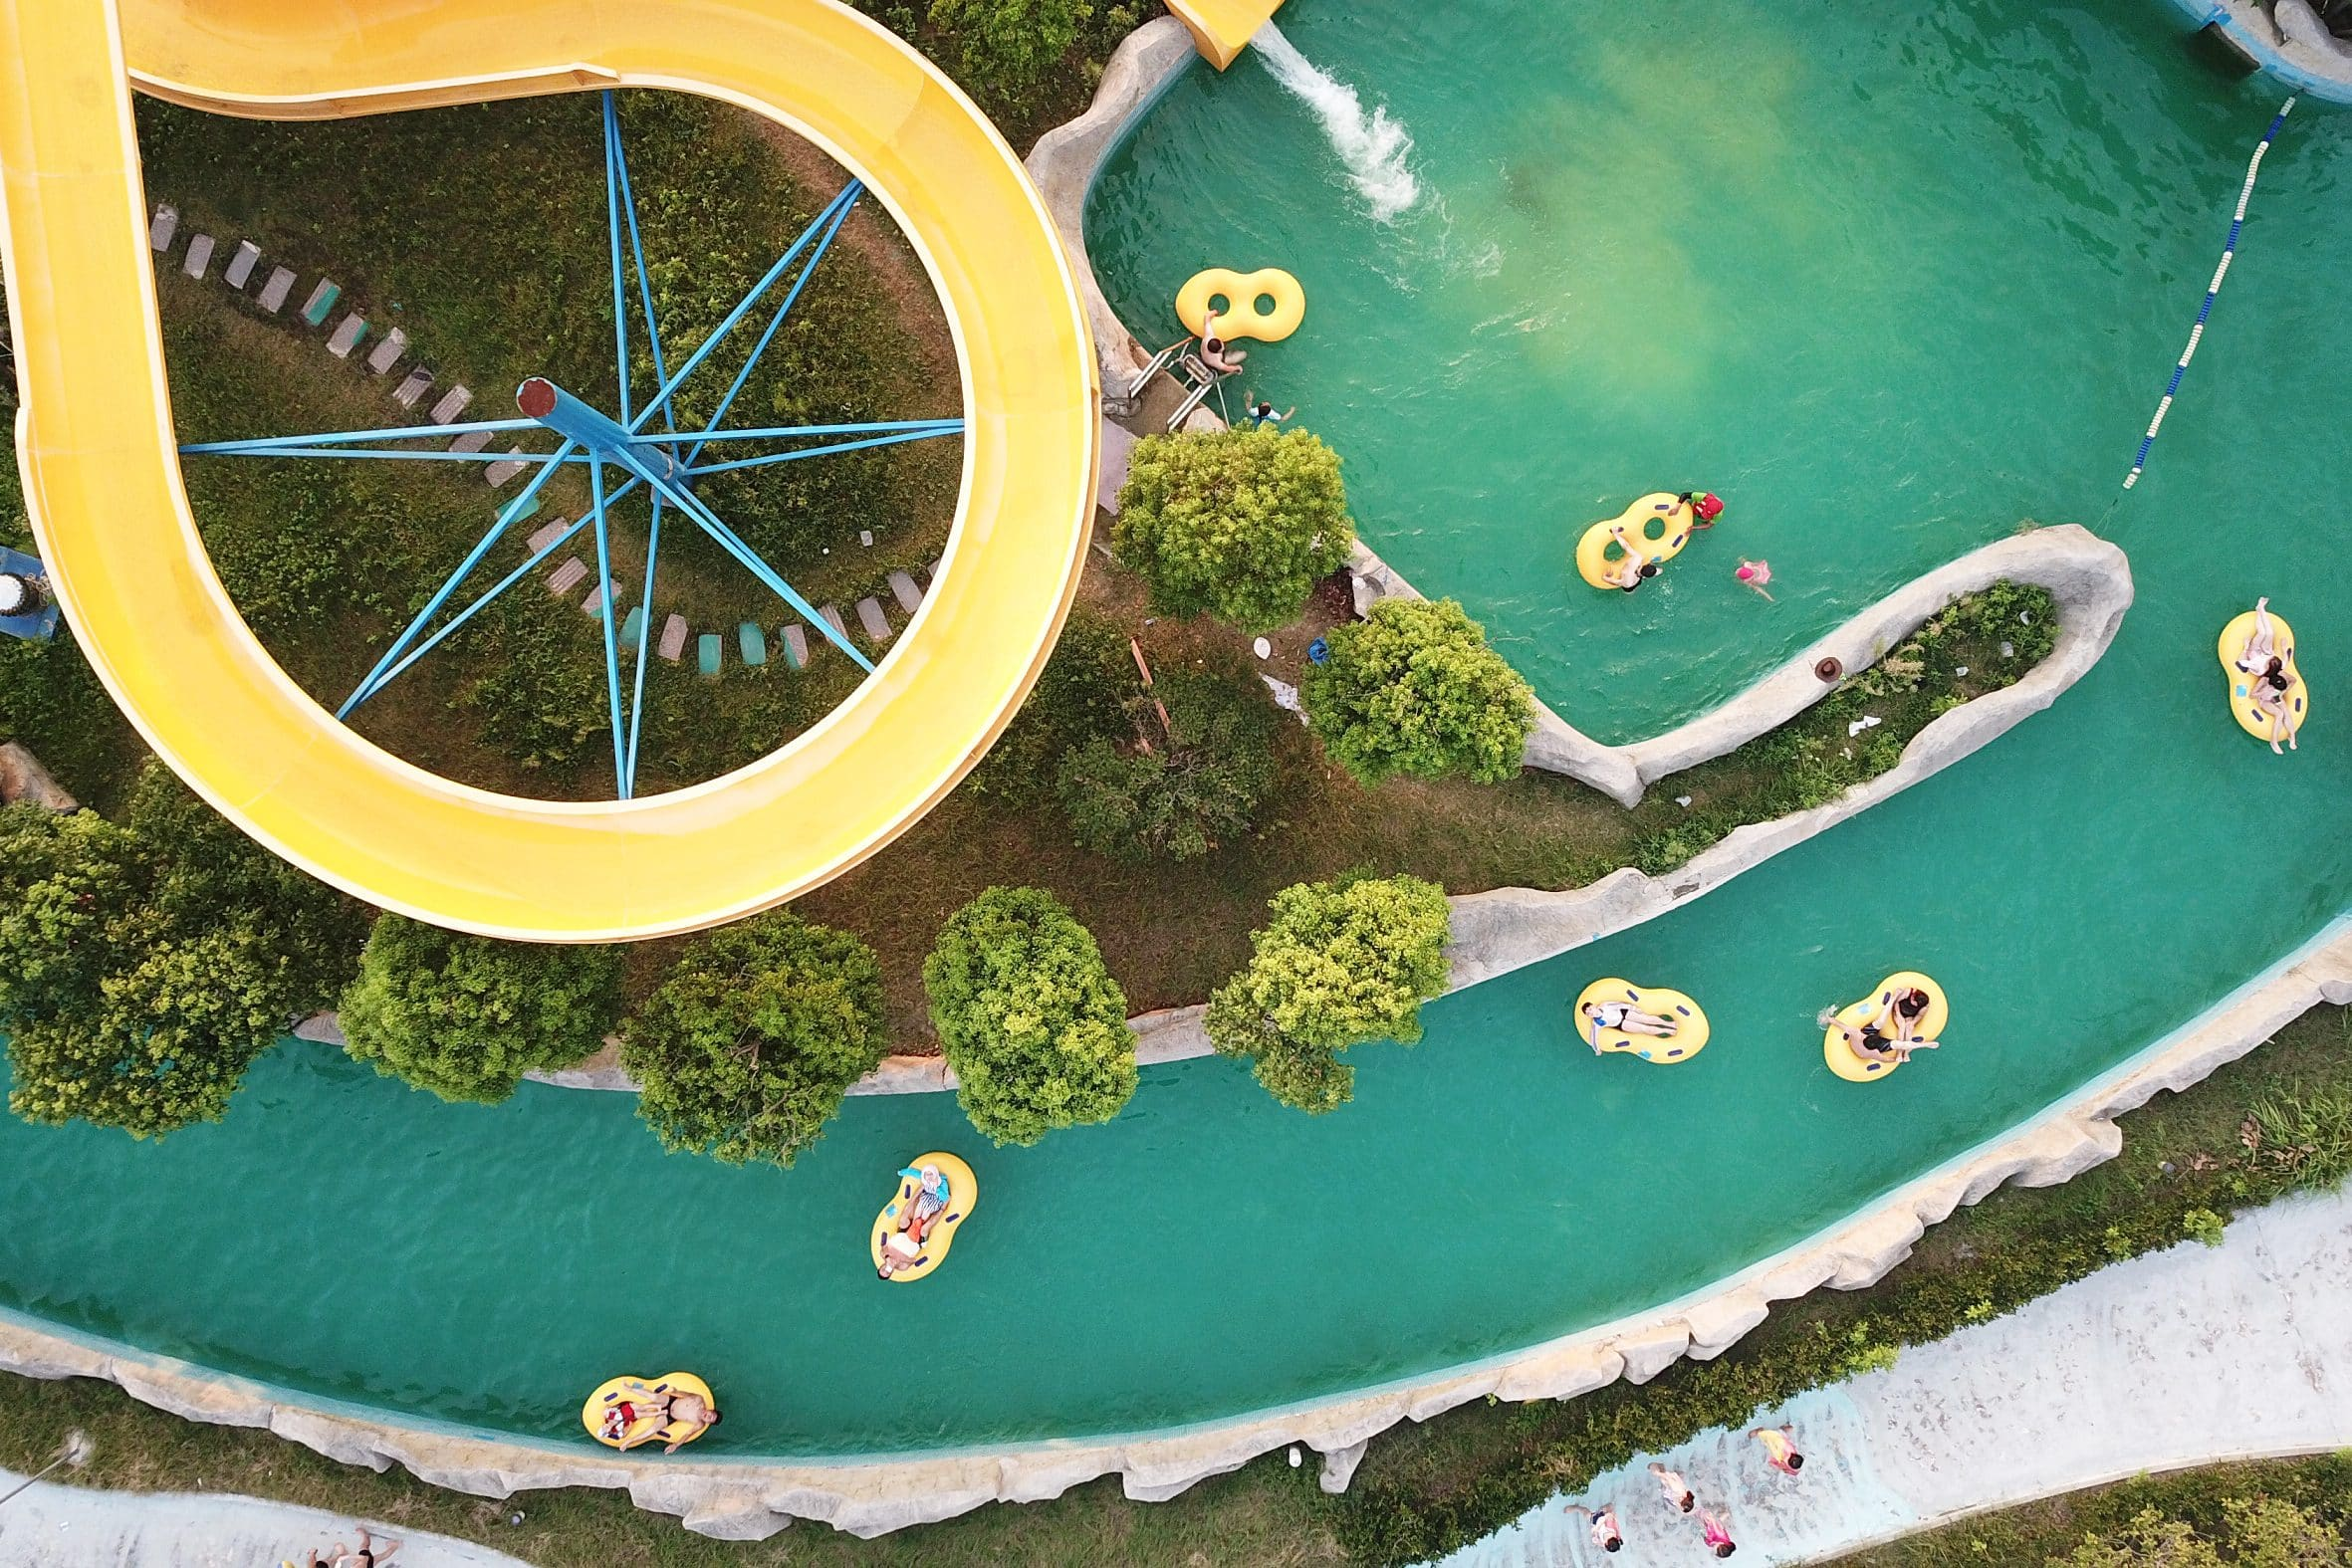 Ariel view of a lazy river